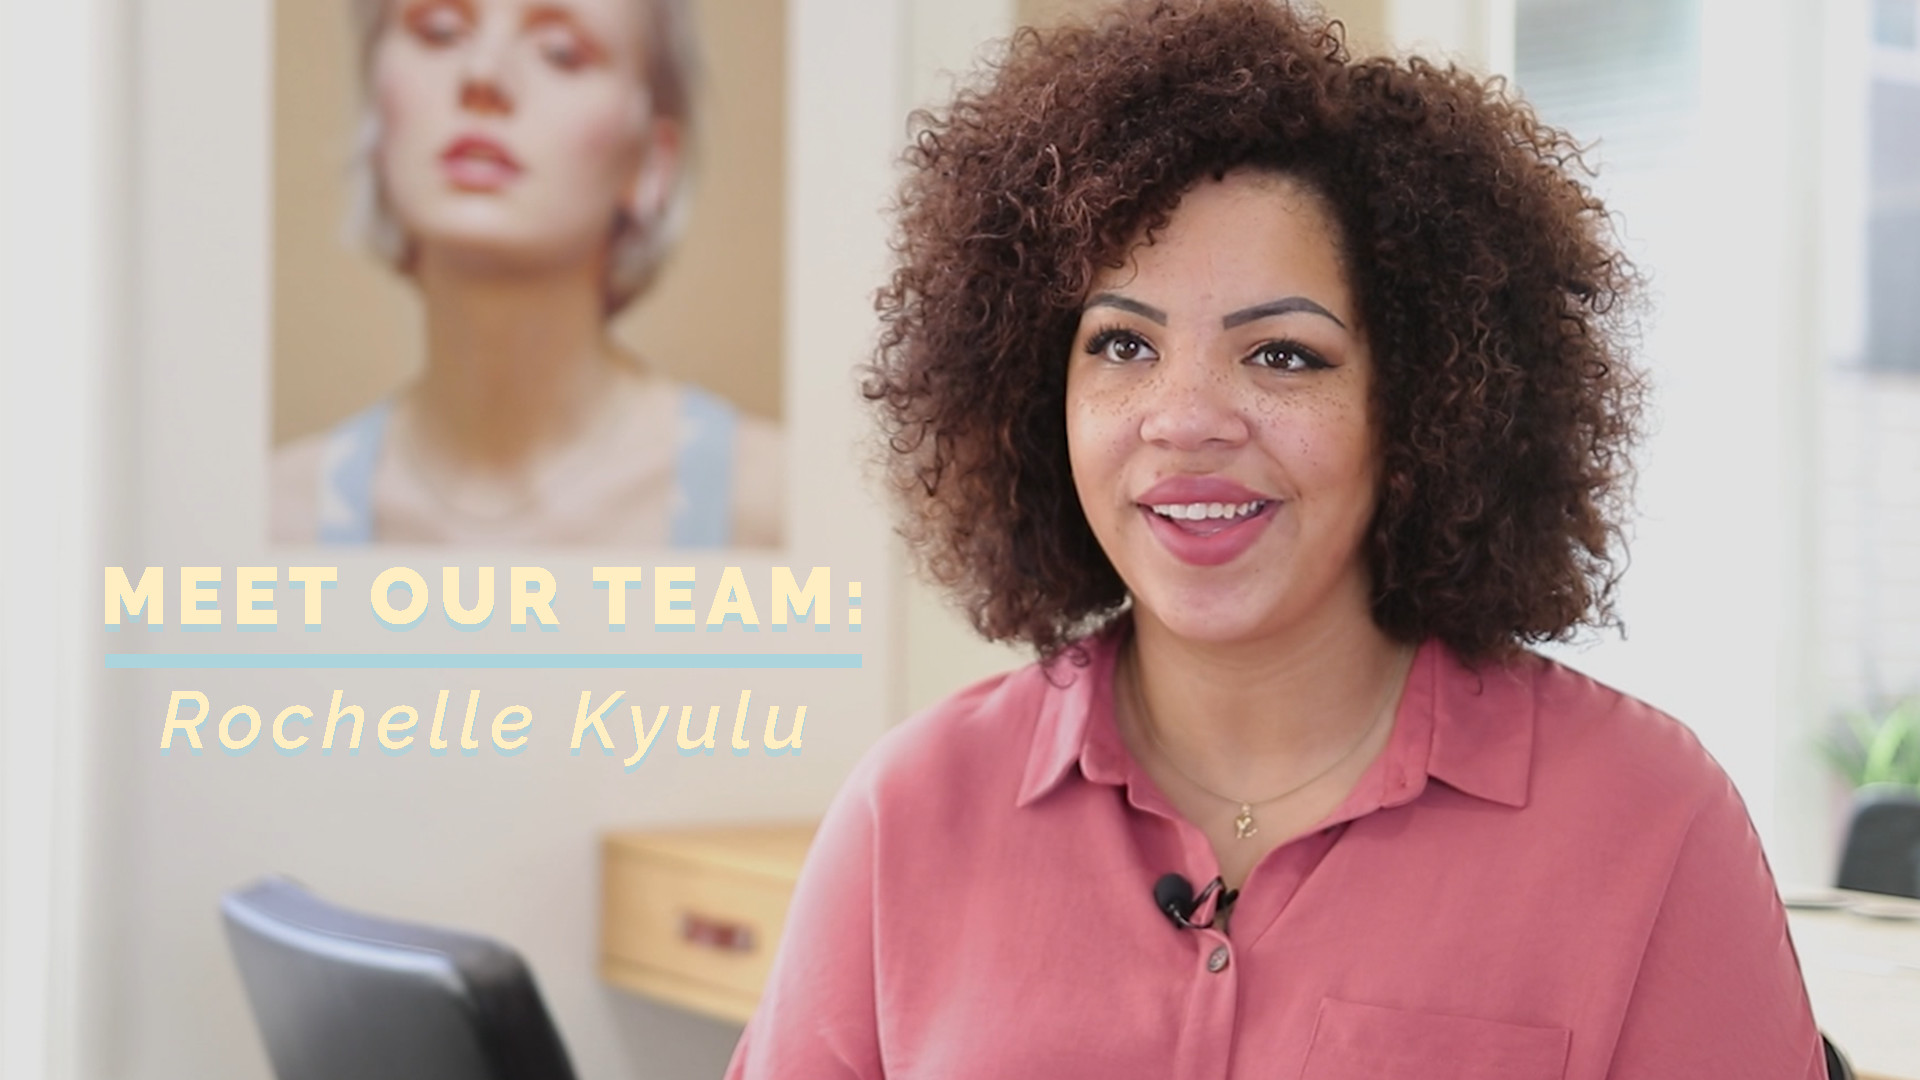 Meet our team: Rochelle Kyulu